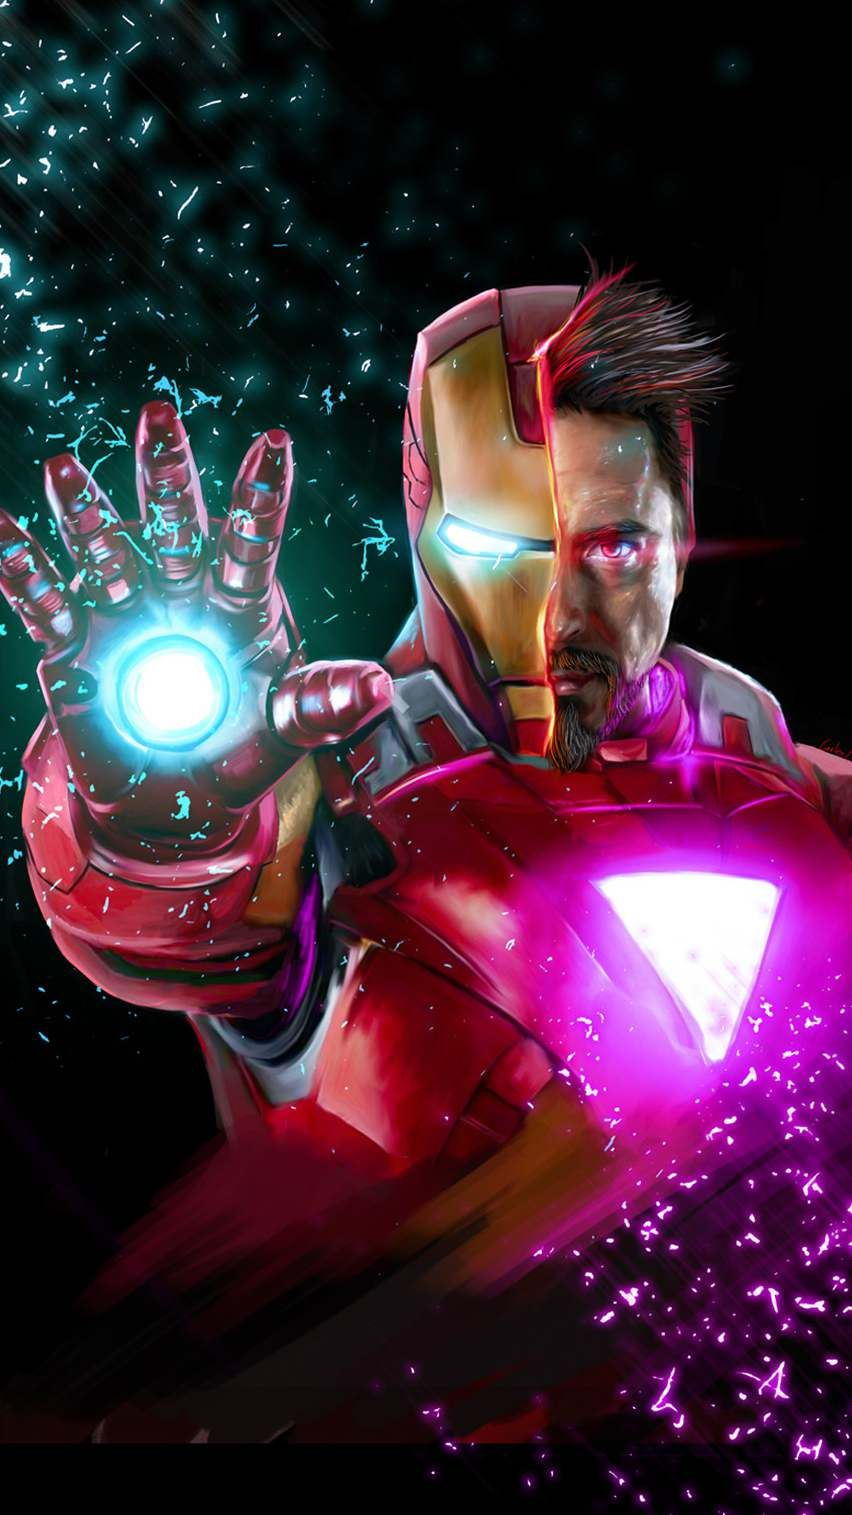 Avengers Endgame Tony Stark Iron Man Iphone Wallpaper Iron Man